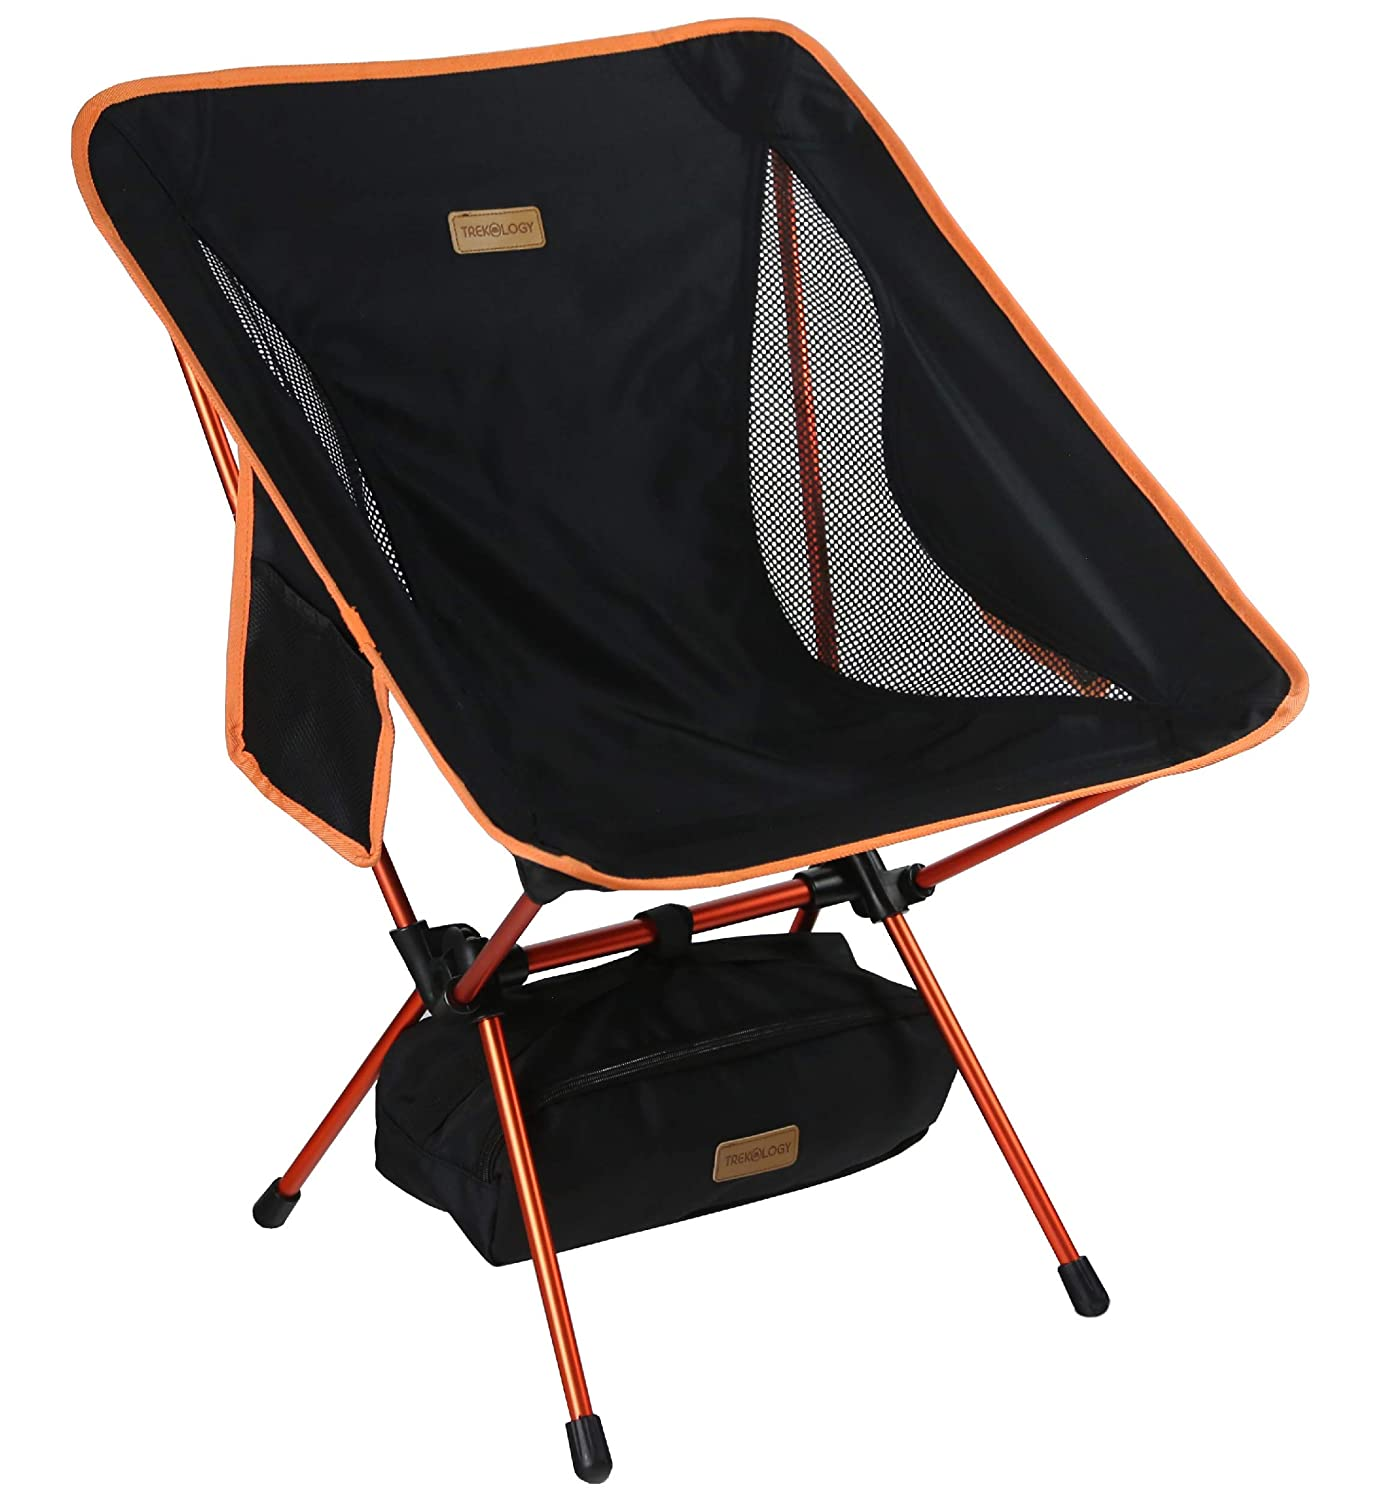 Trekology YIZI GO Portable Camping Chair Best Backpacking Chairs